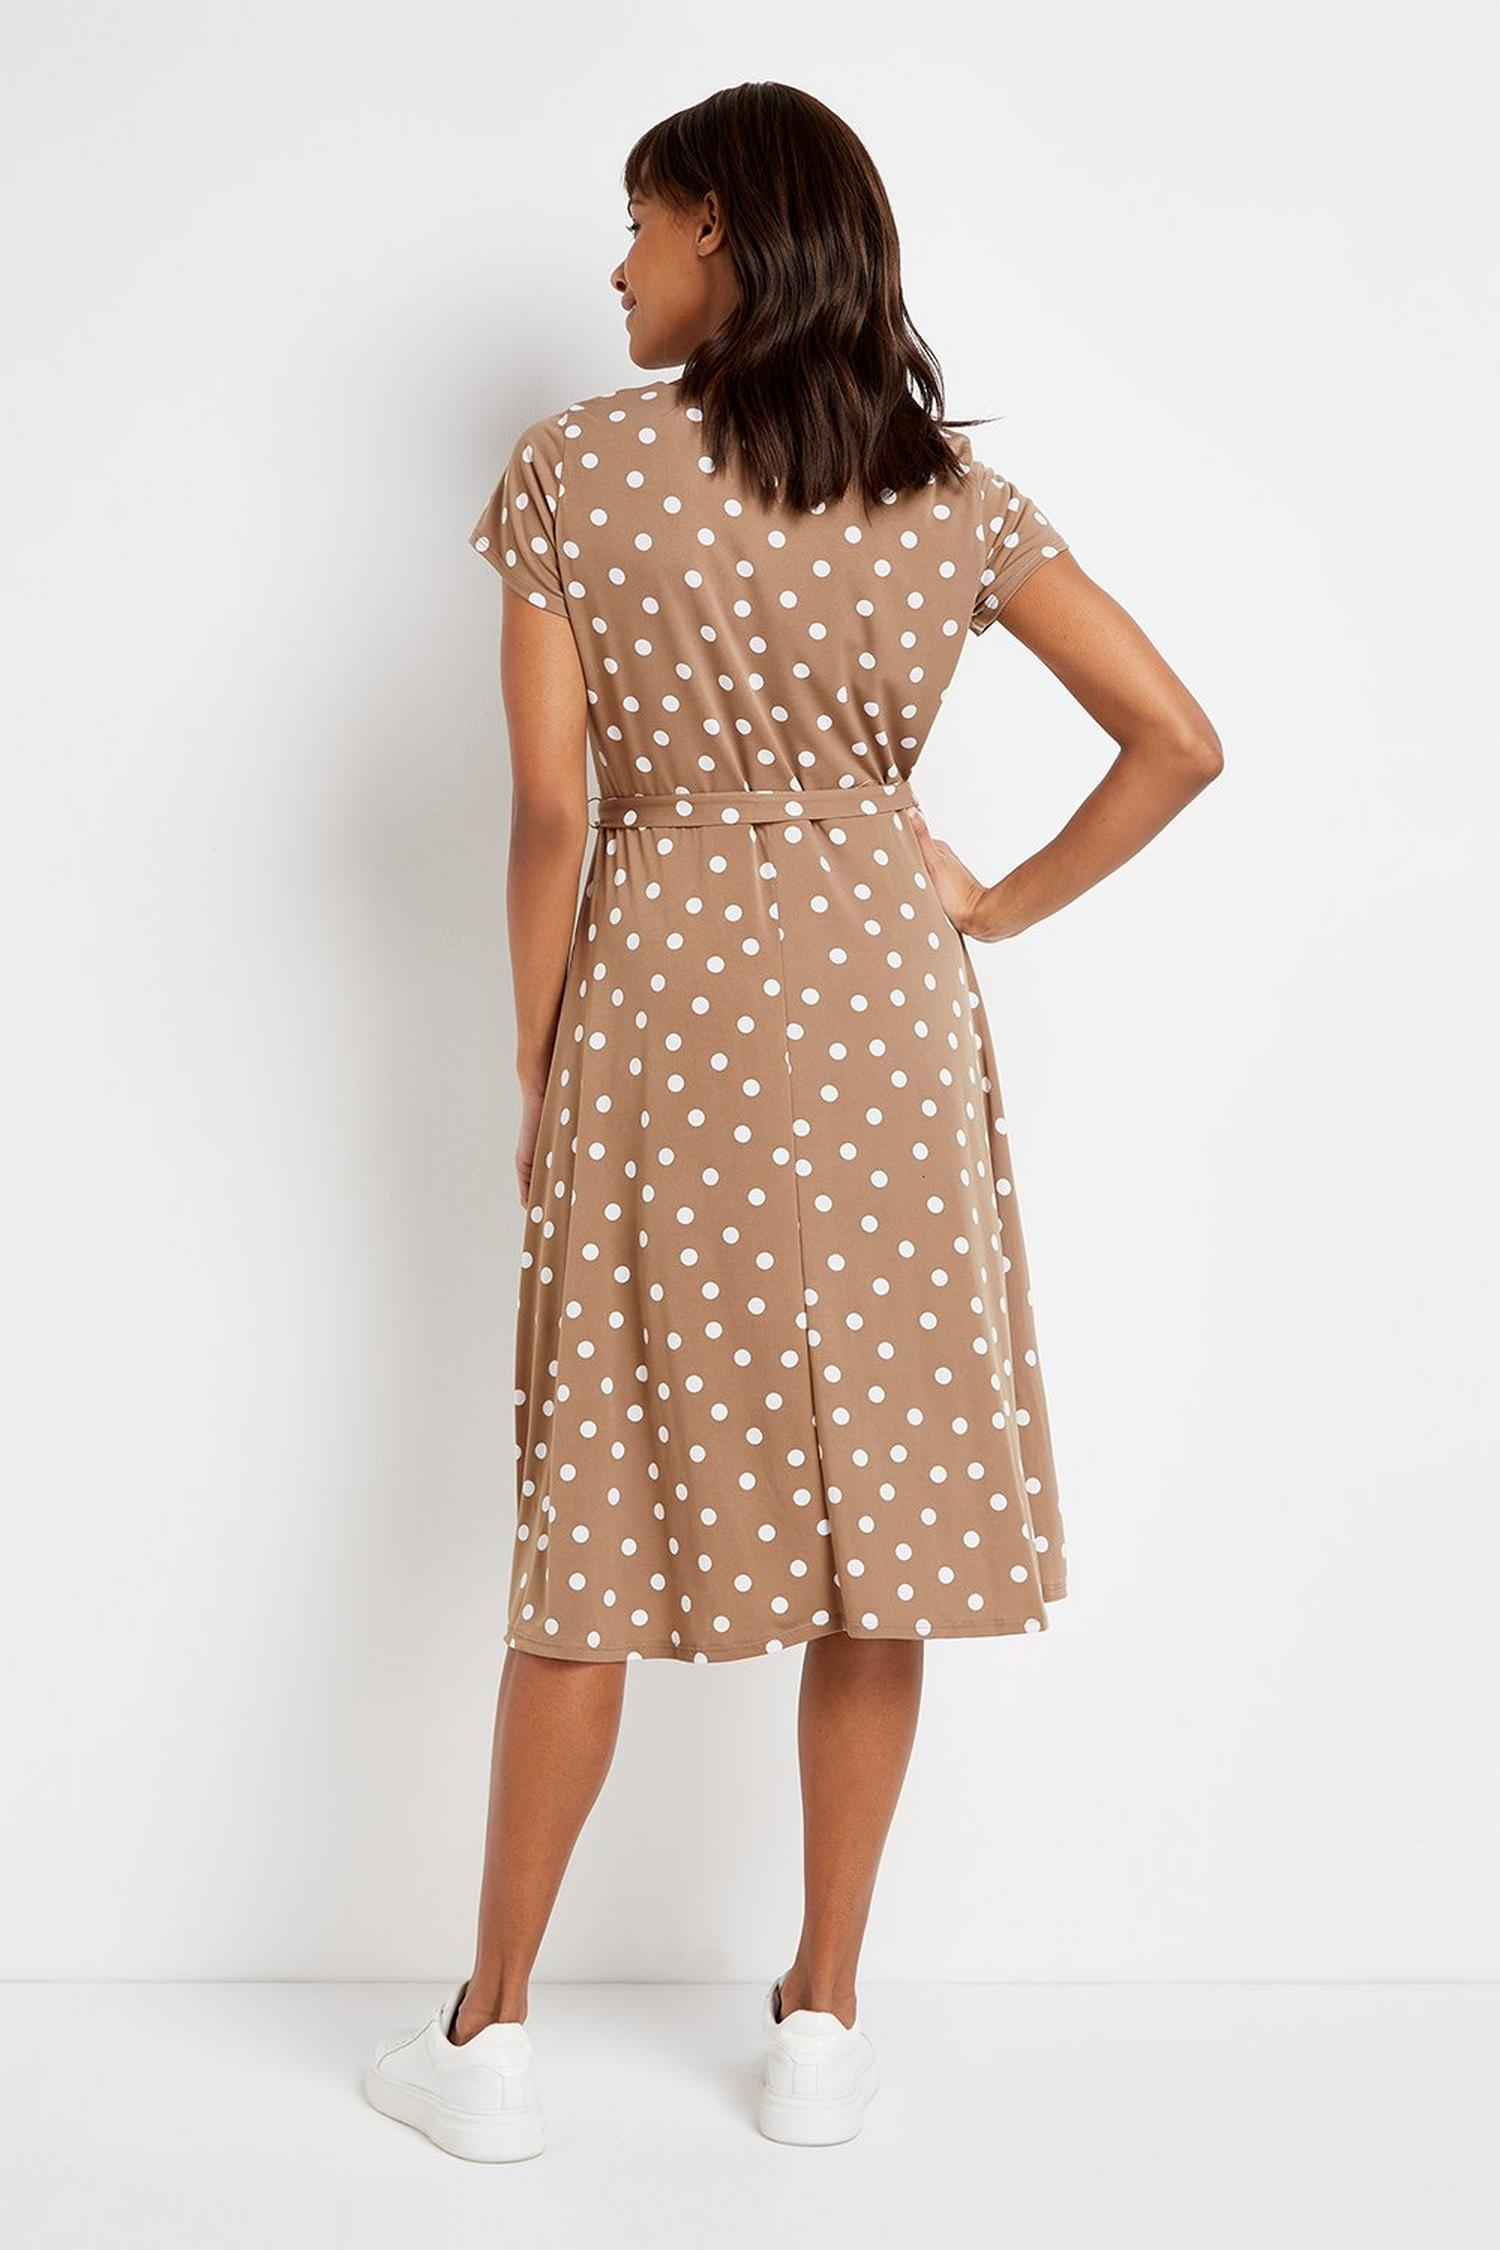 103 Taupe Polka Dot Dress image number 4